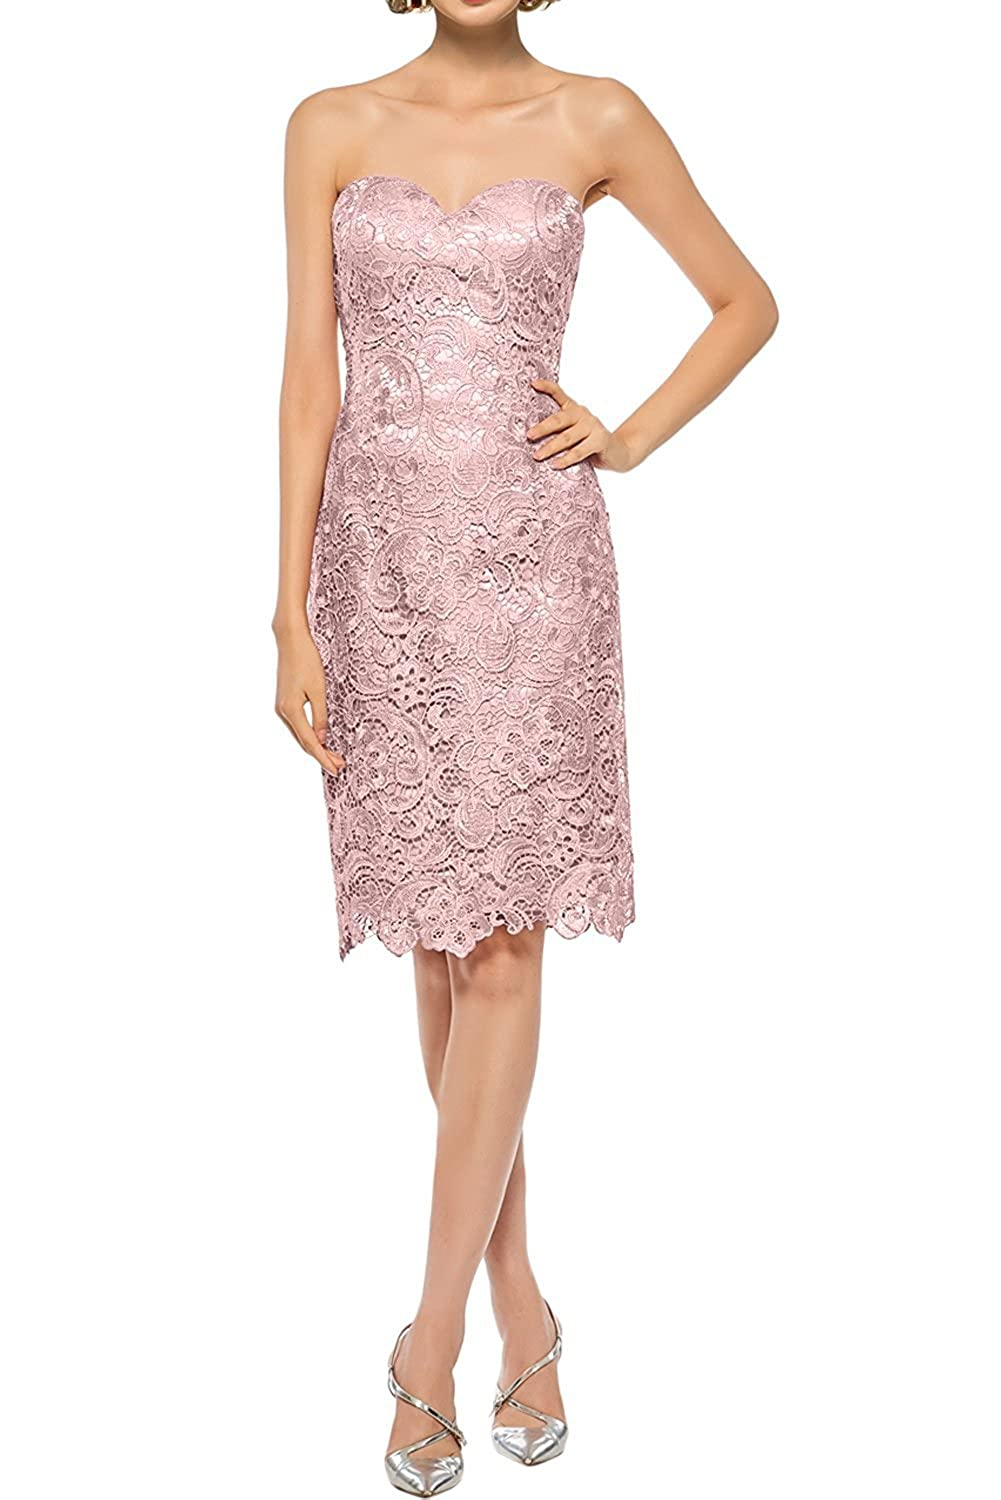 DressyMe Womens Mother of Bride Dress Sleeves Knee-Length Party Dress 2 Piece